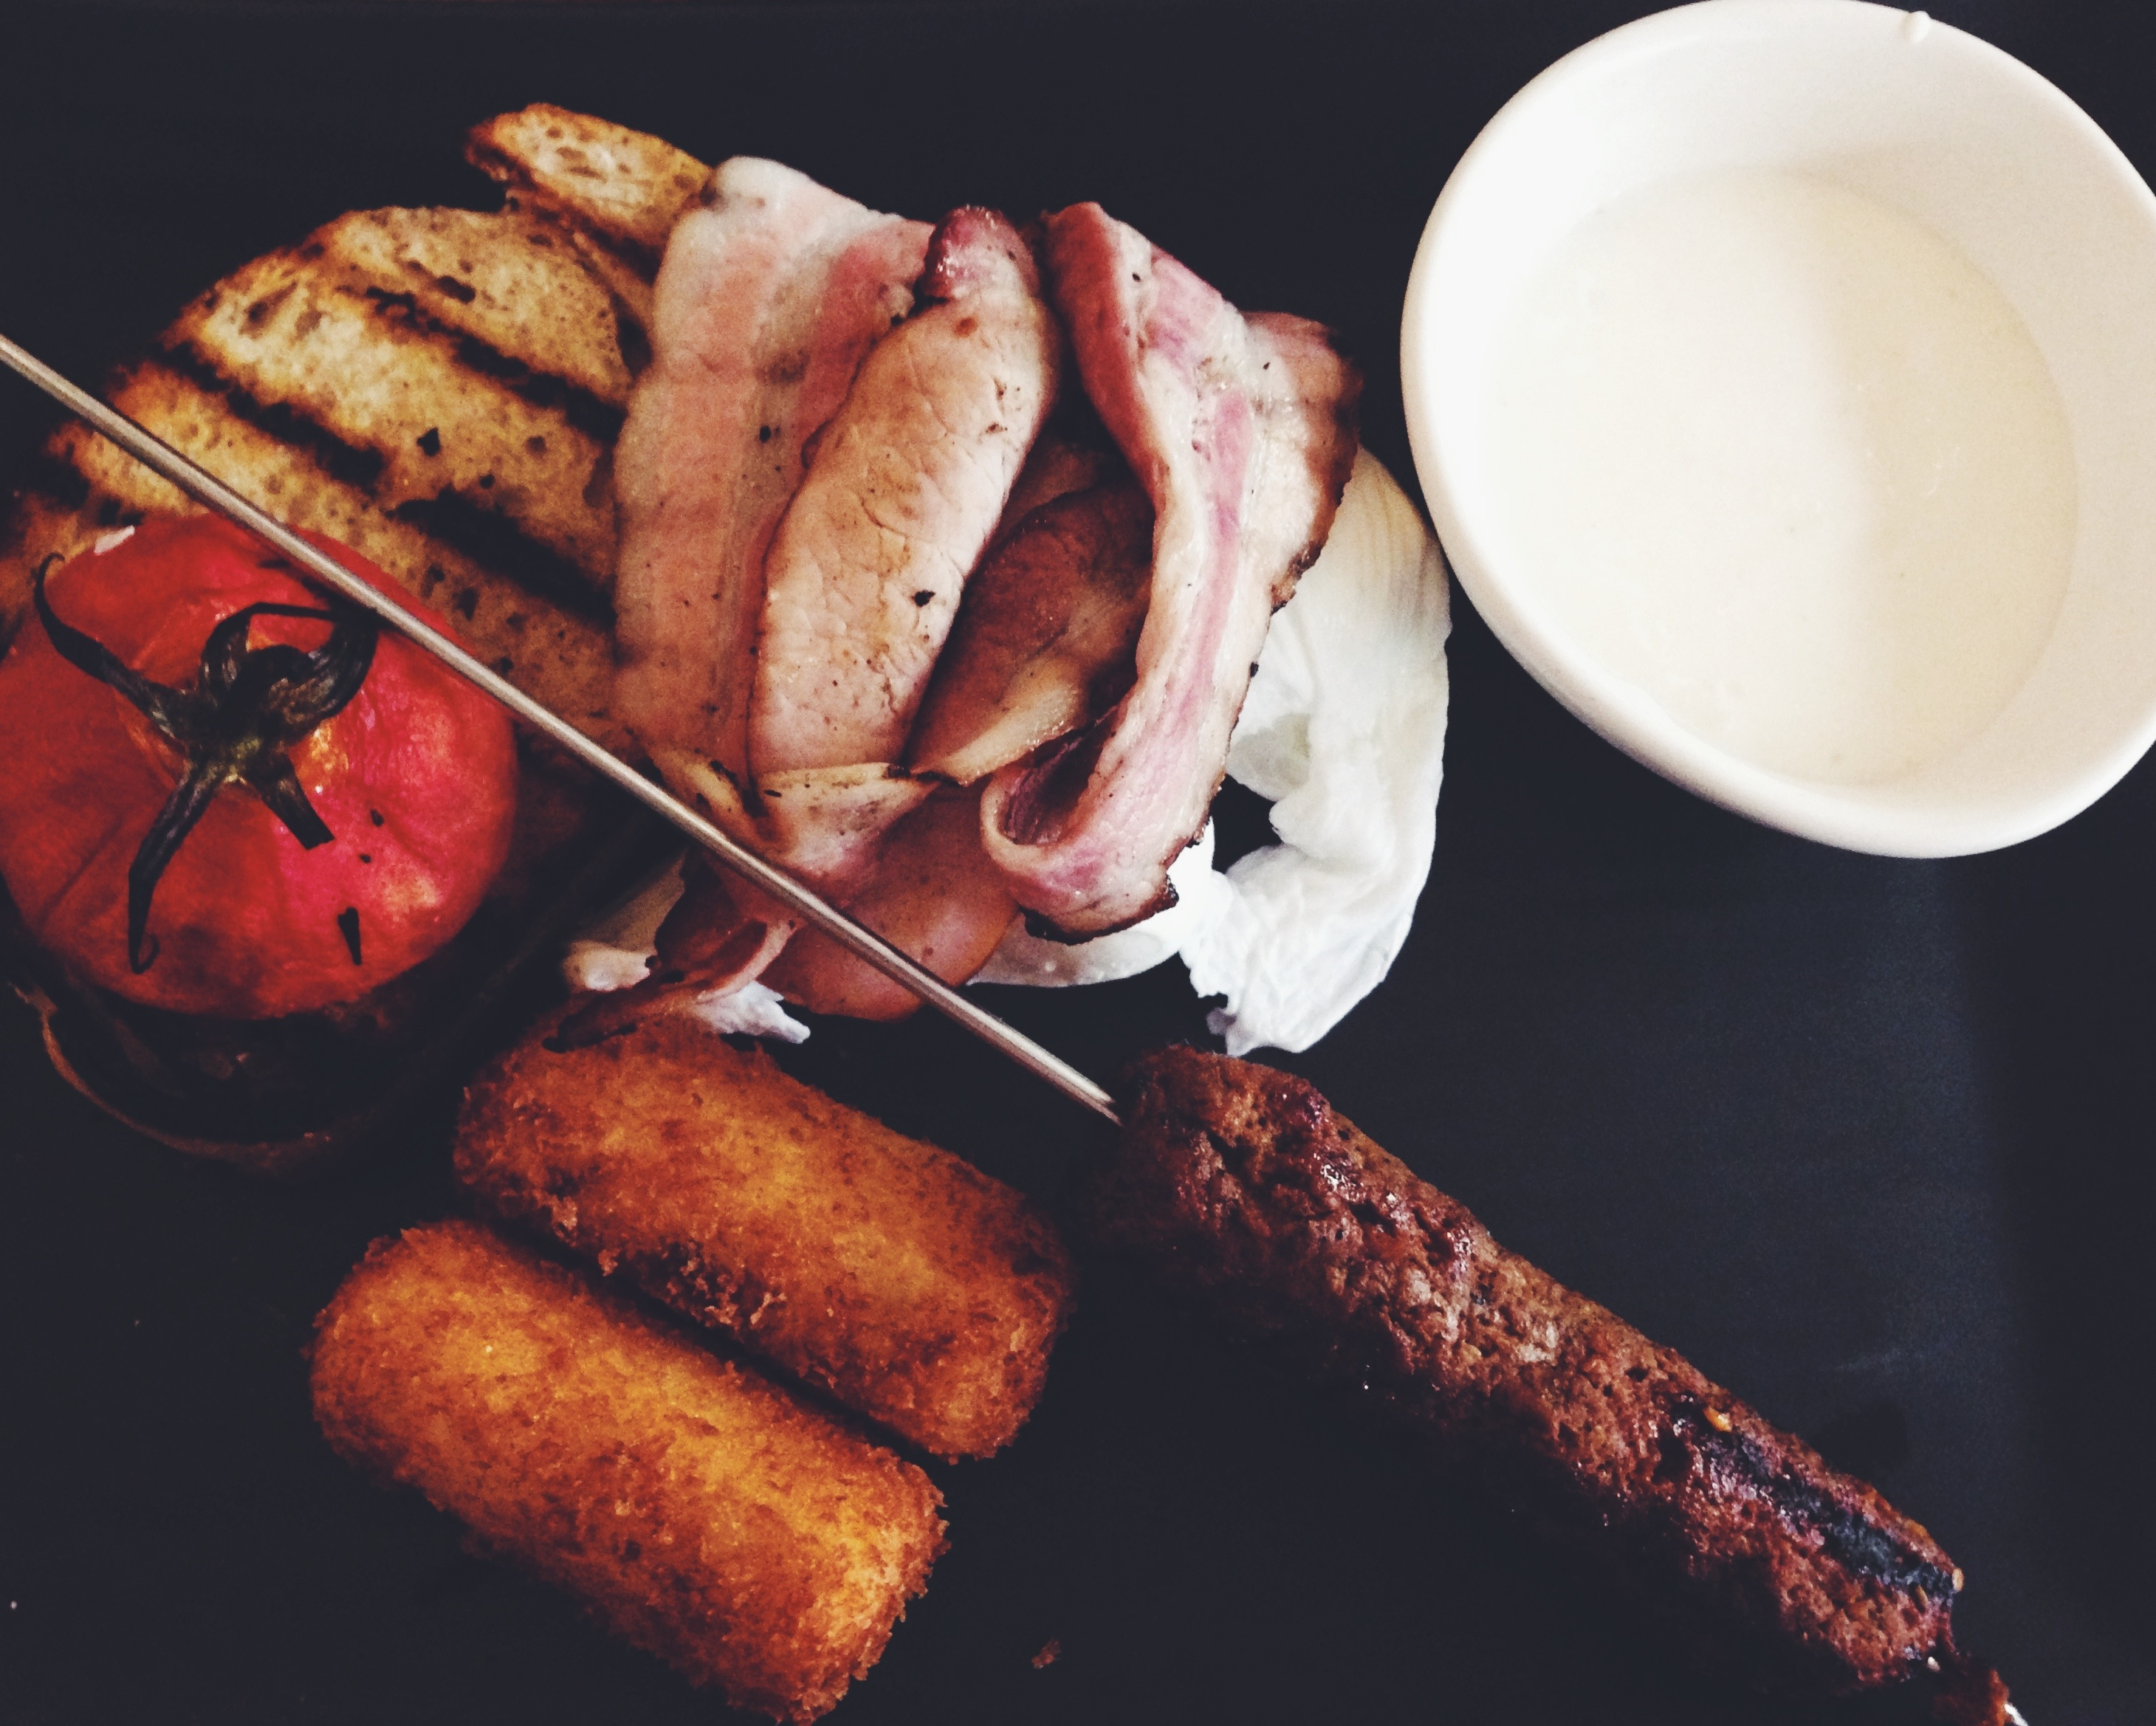 Gerard's big breakfast of double smoked bacon, merguez, confit tomato, kishk yoghurt, eggs  and smoked potato croquette $19